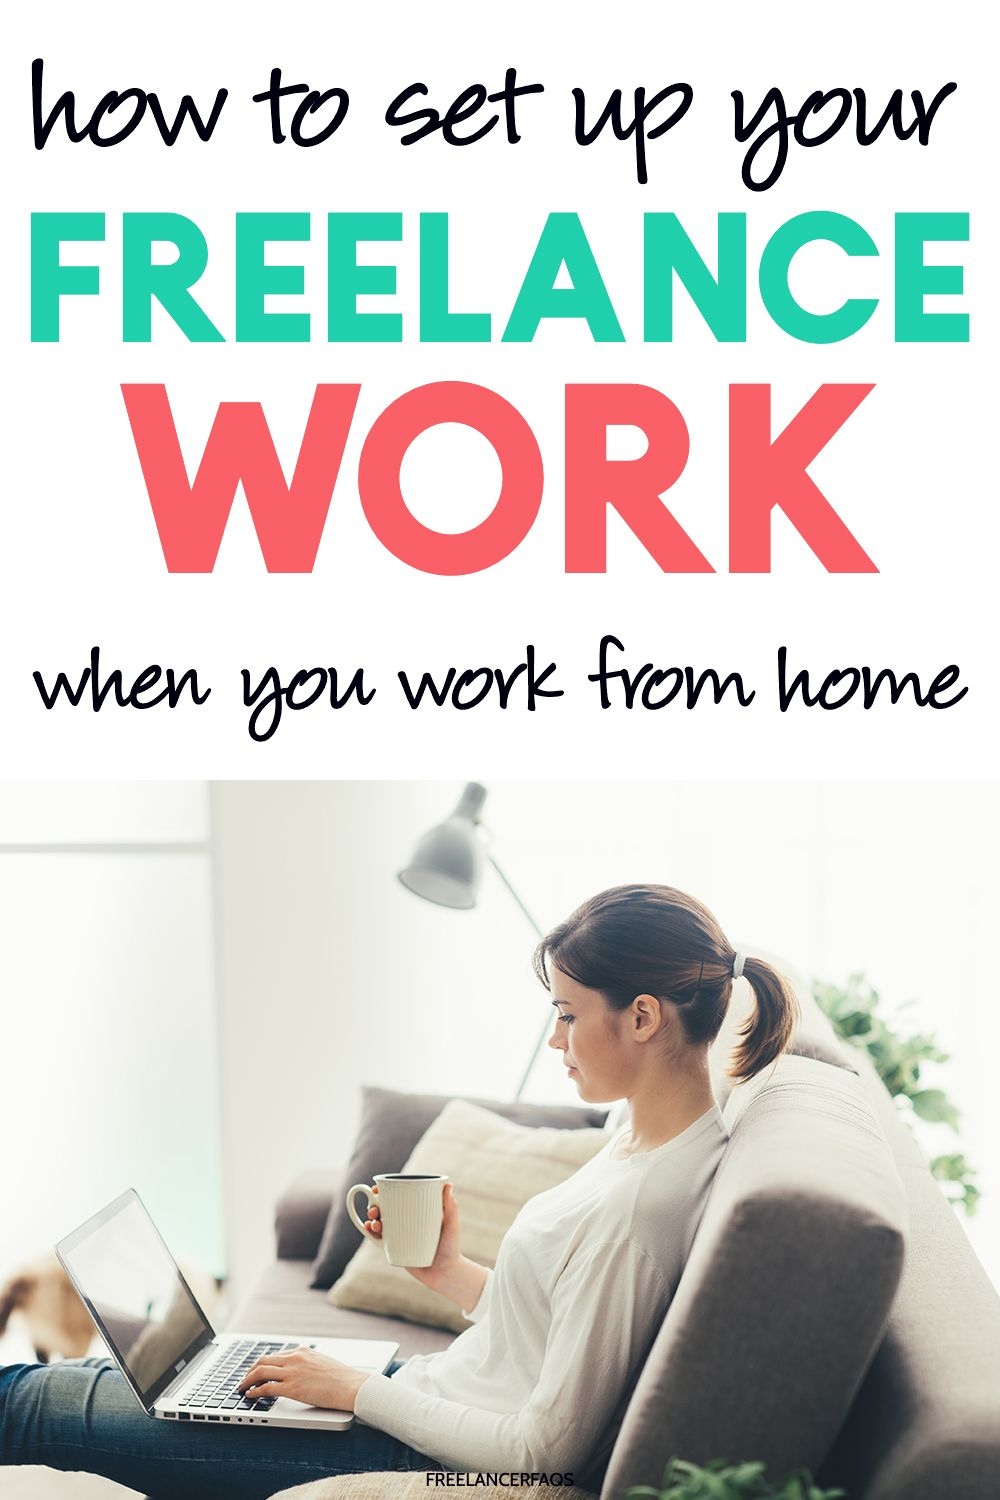 Beginner Freelance Writing Jobs from Home No Experience